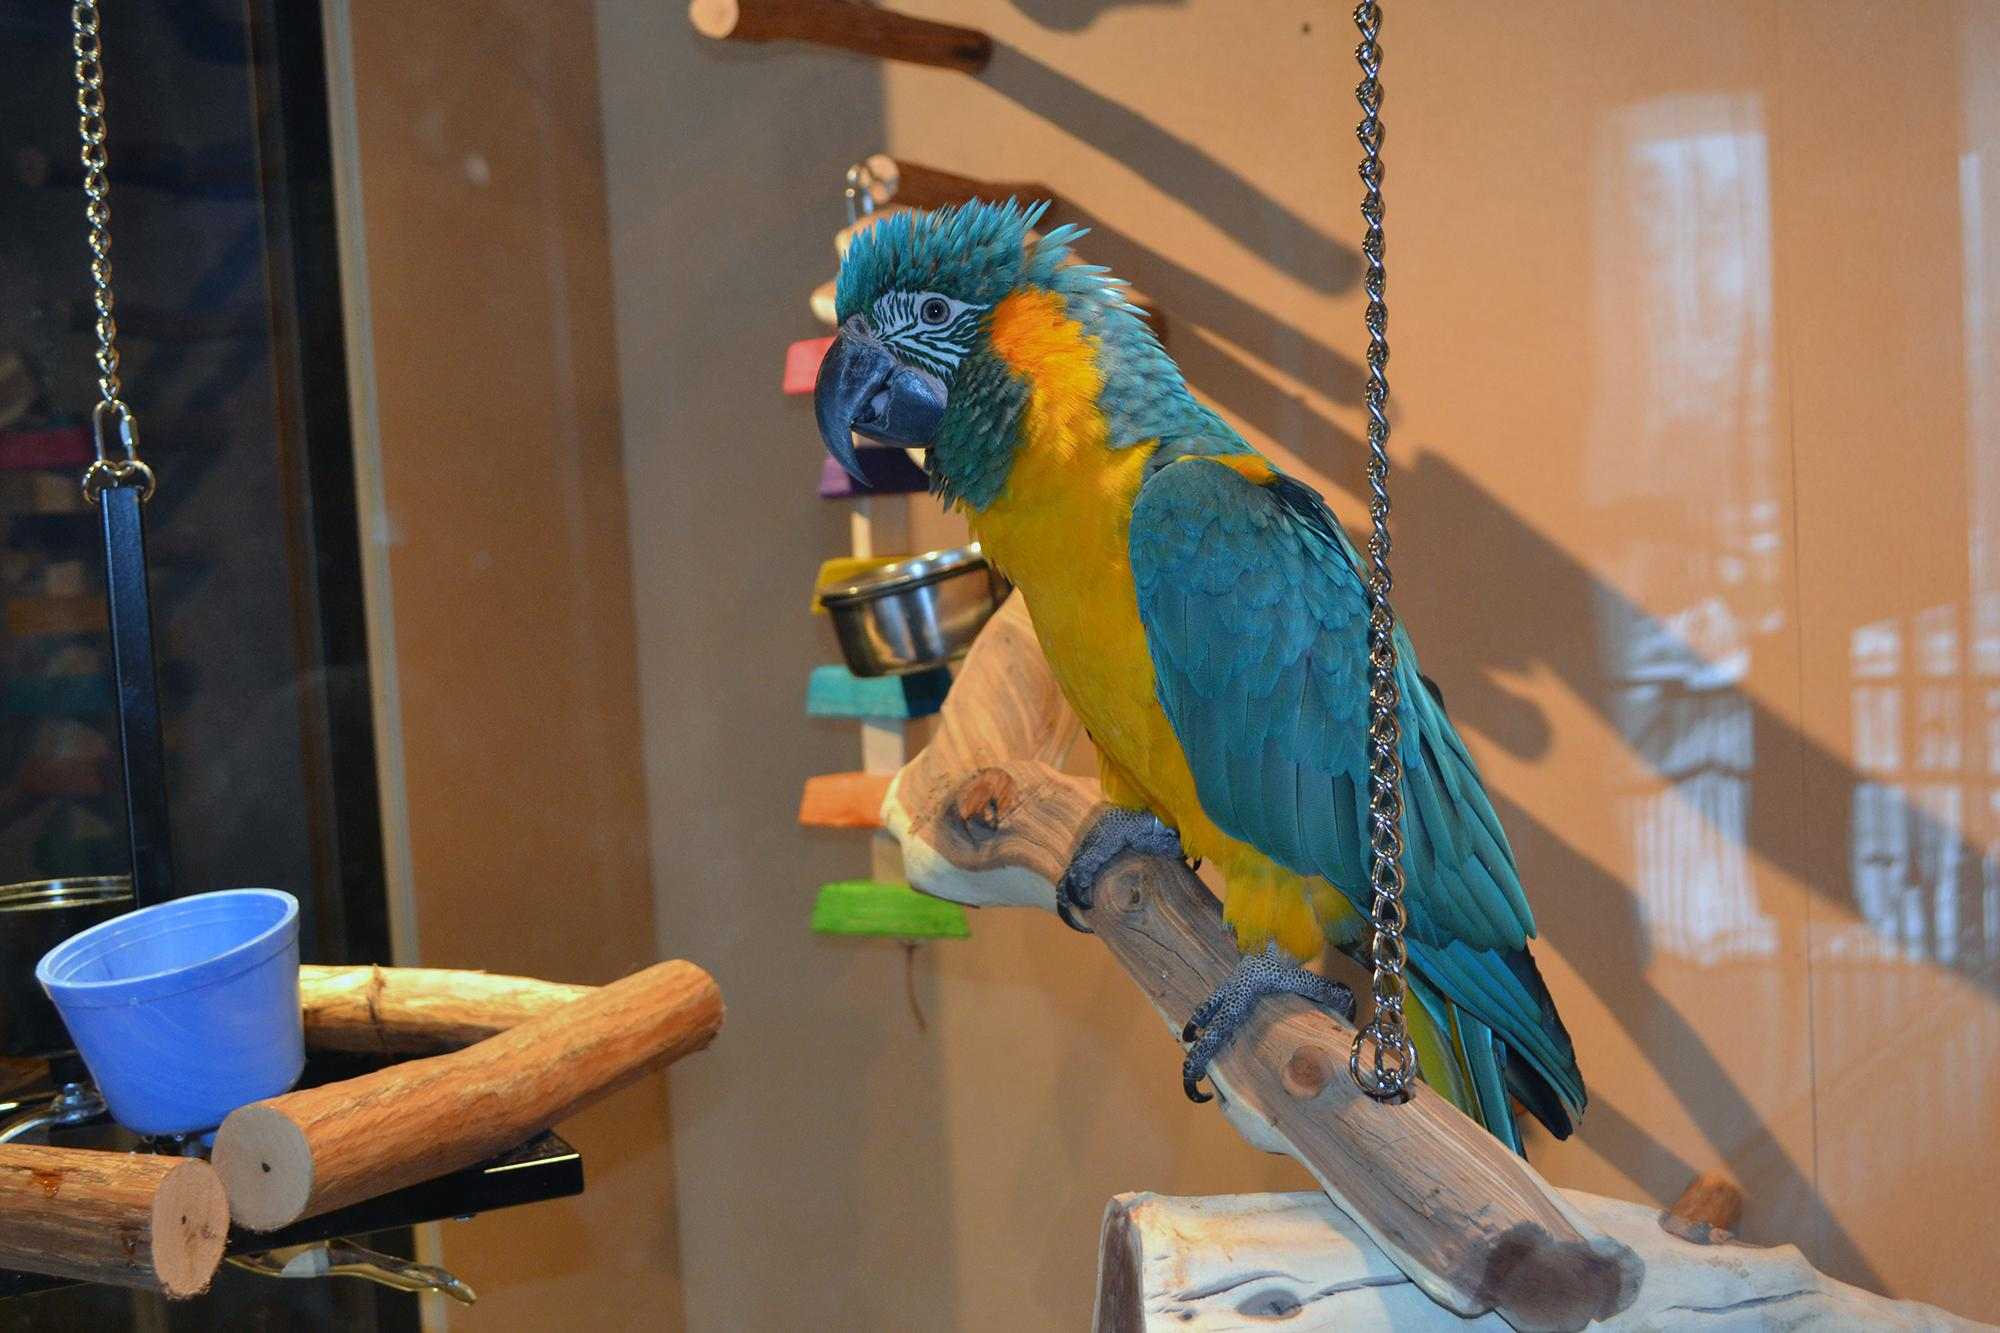 Iggy, an 8-year-old blue-throated macaw, inside The Bird House at the Peggy Notebaert Nature Museum.